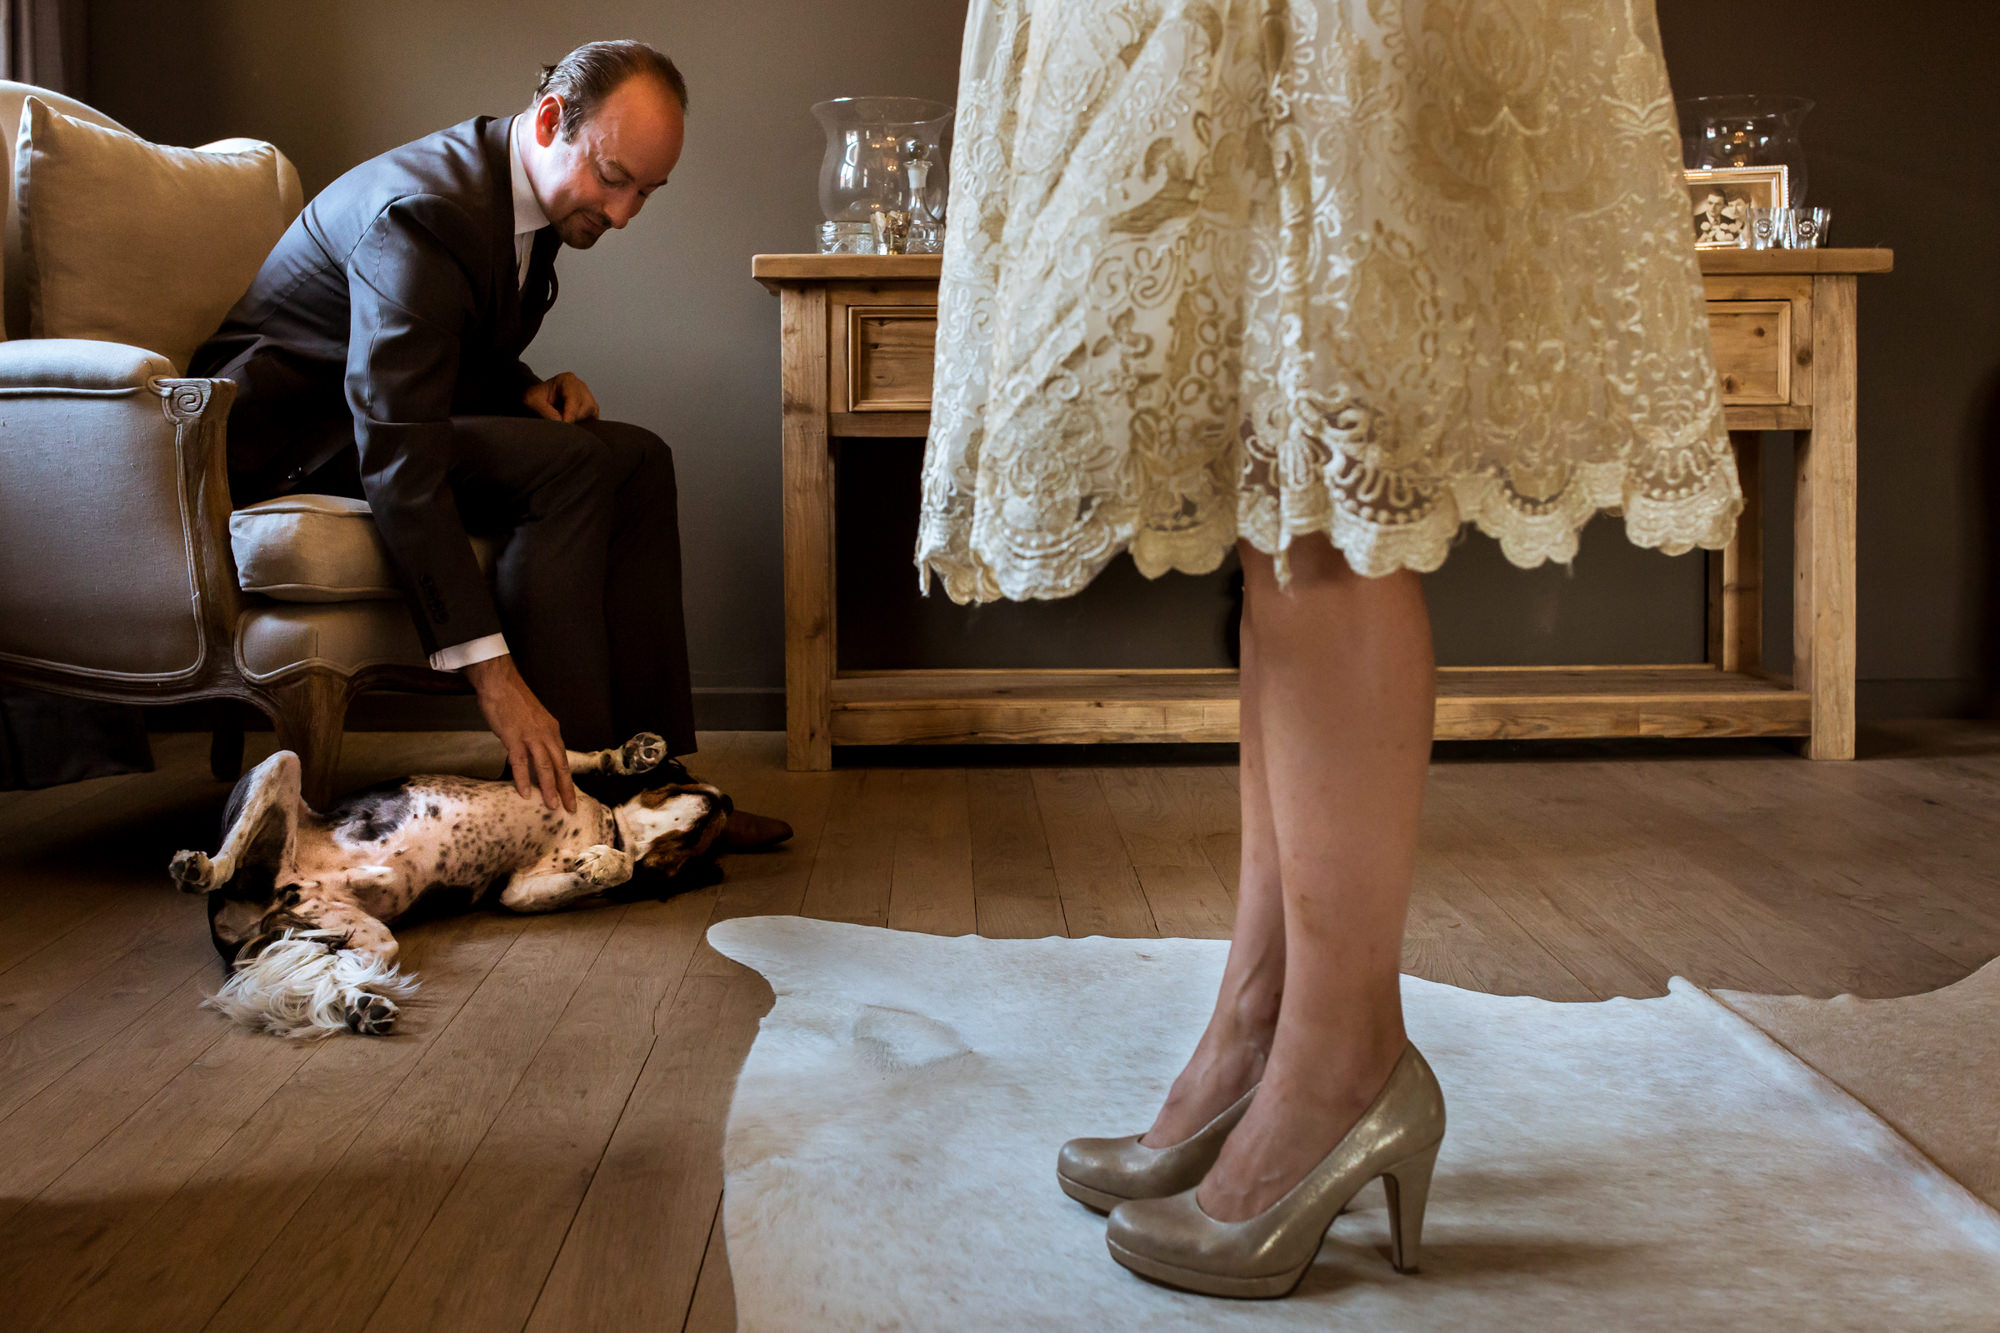 Groom plays with dog as bride looks on photo by Fotobelle: Isabelle Hattink